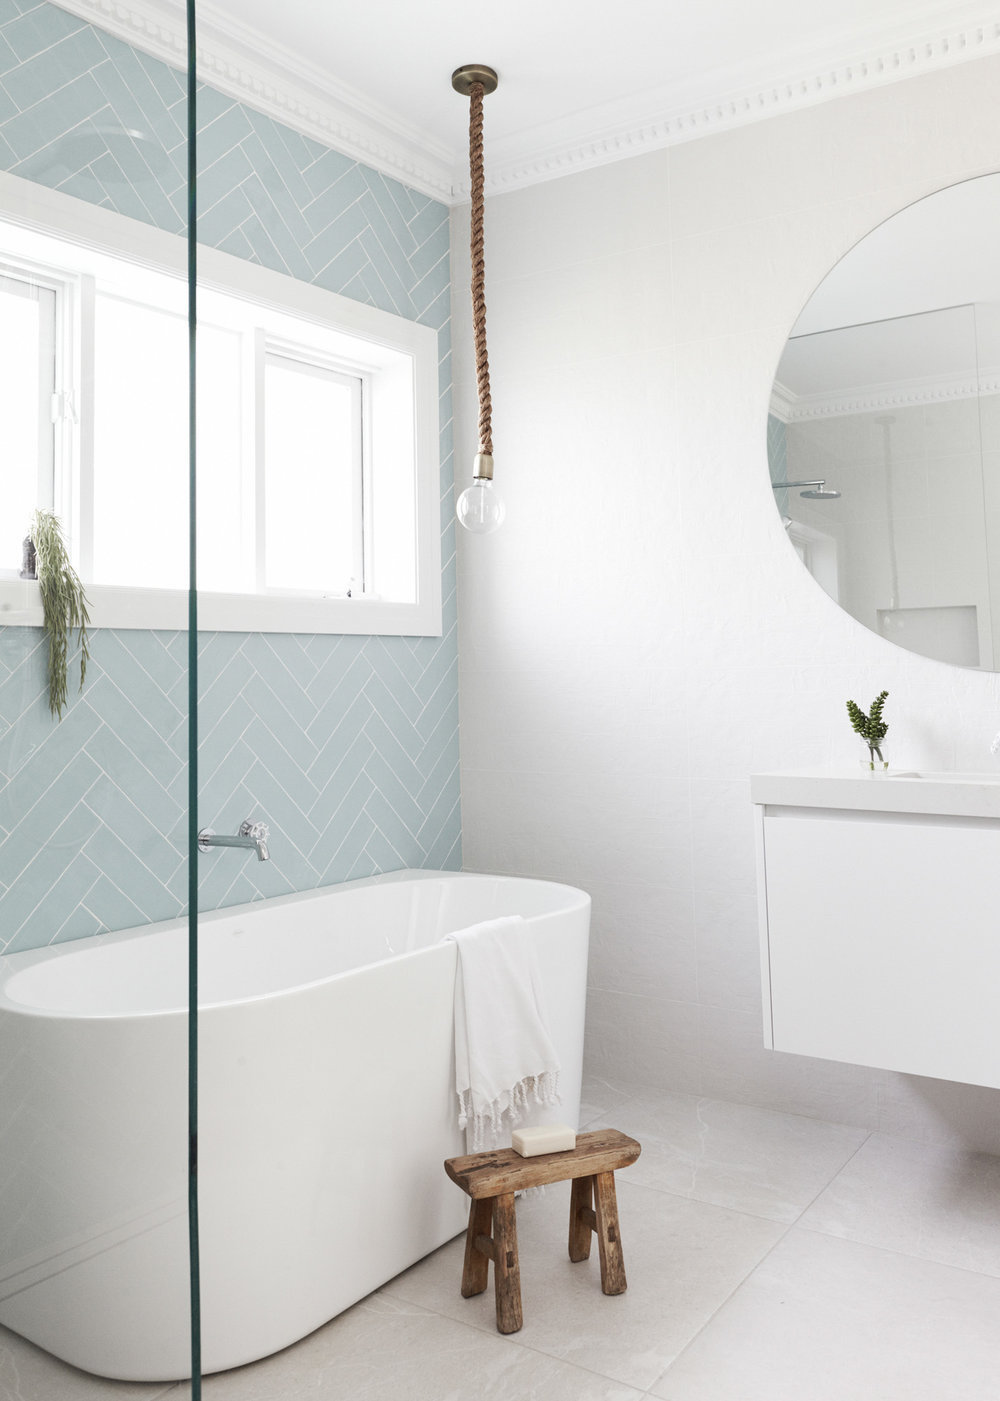 Bathroom with white freestanding tub and rope lightbulb